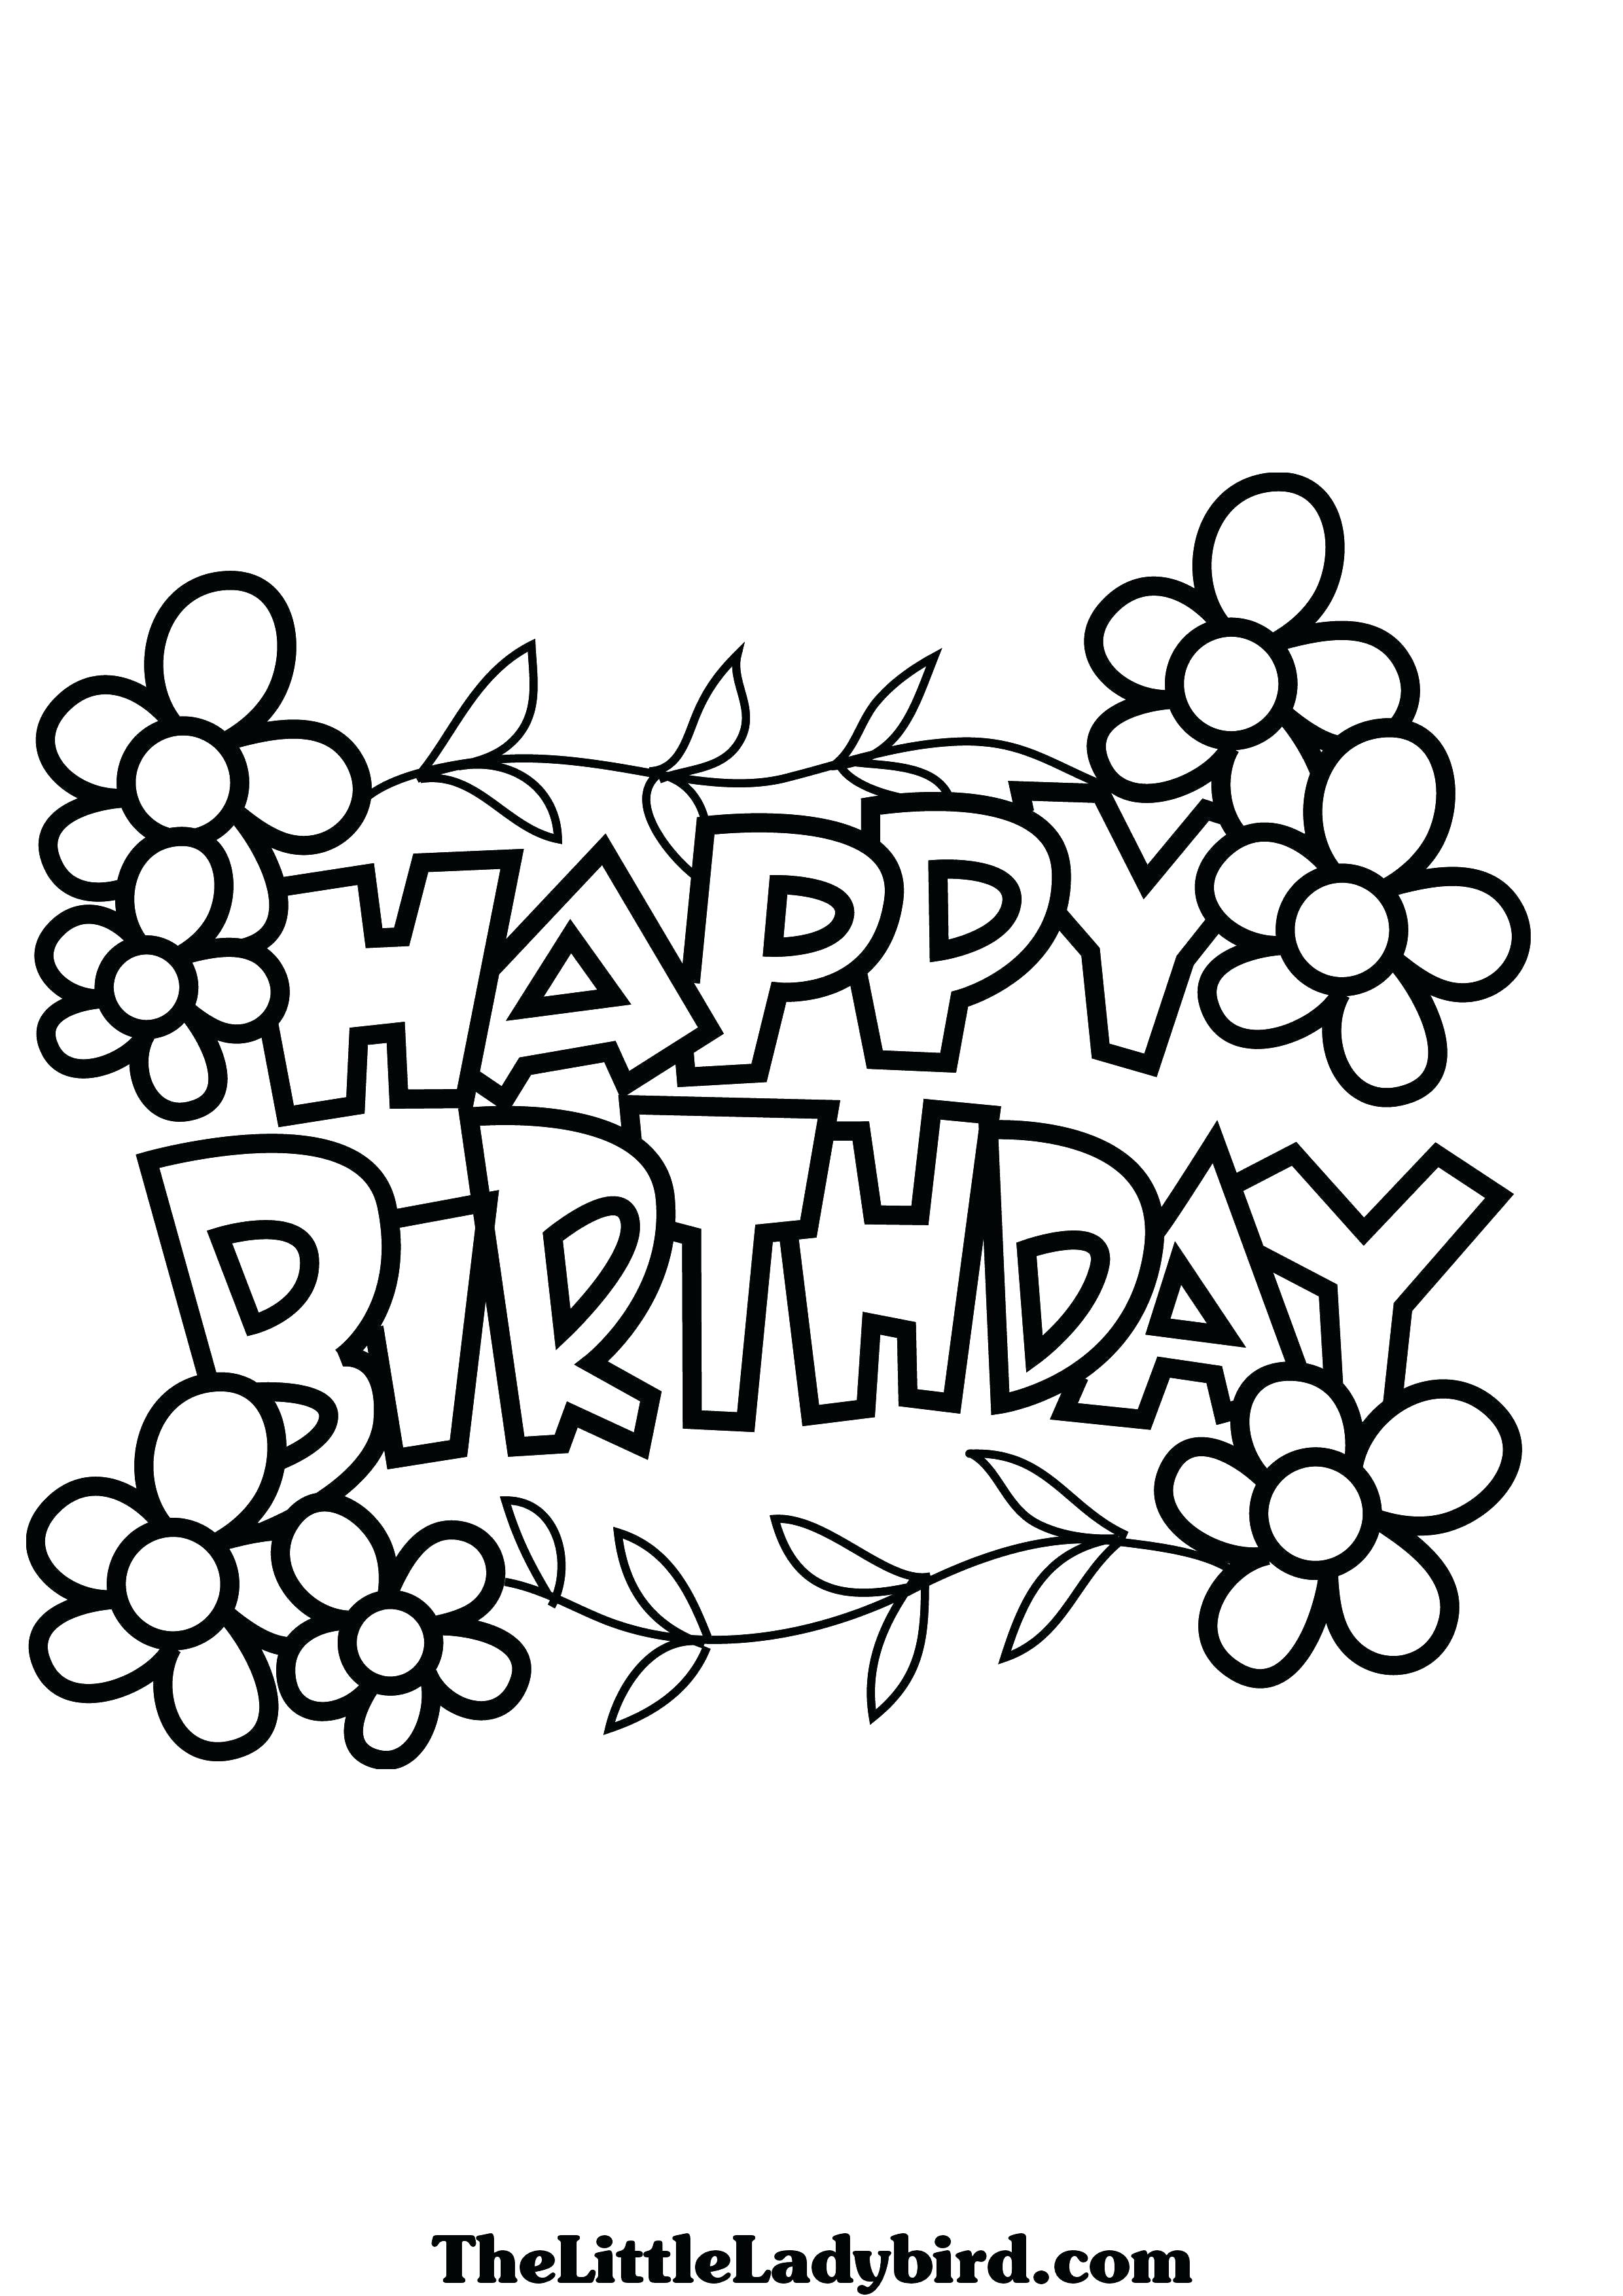 happy birthday sign coloring pages ; happy-birthday-sign-printable-black-and-white-coloring-cool-sheet